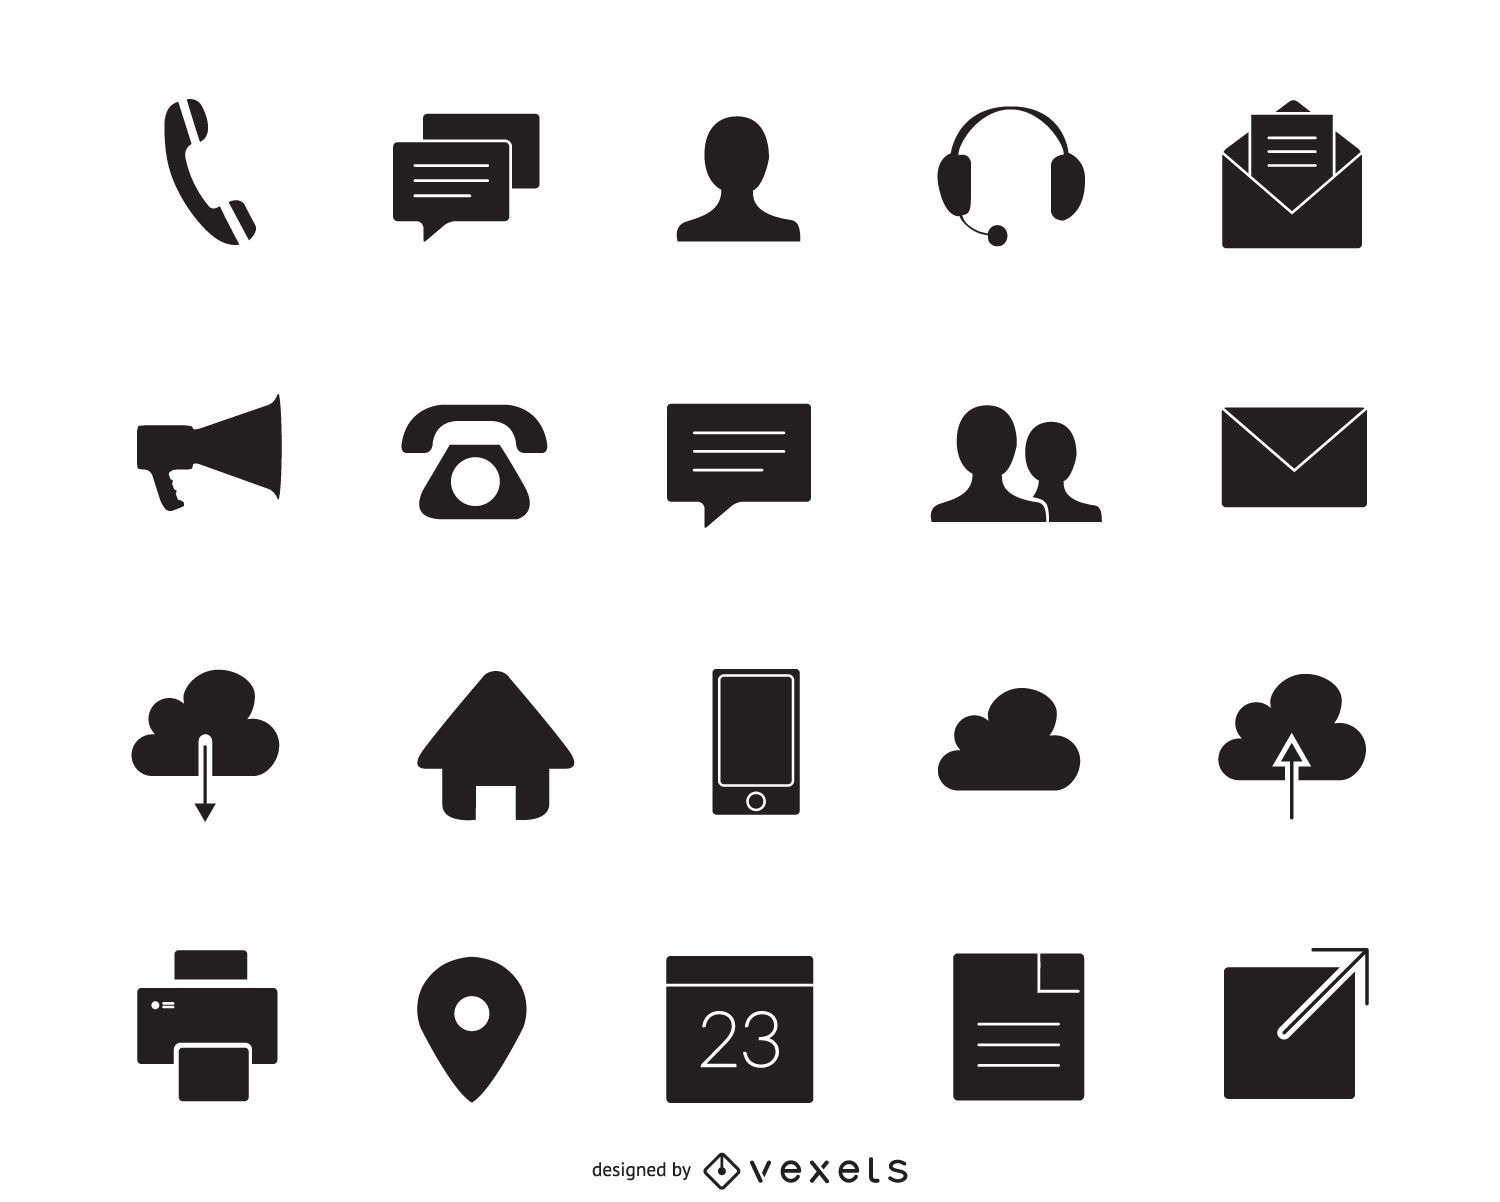 Contact icons silhouette set